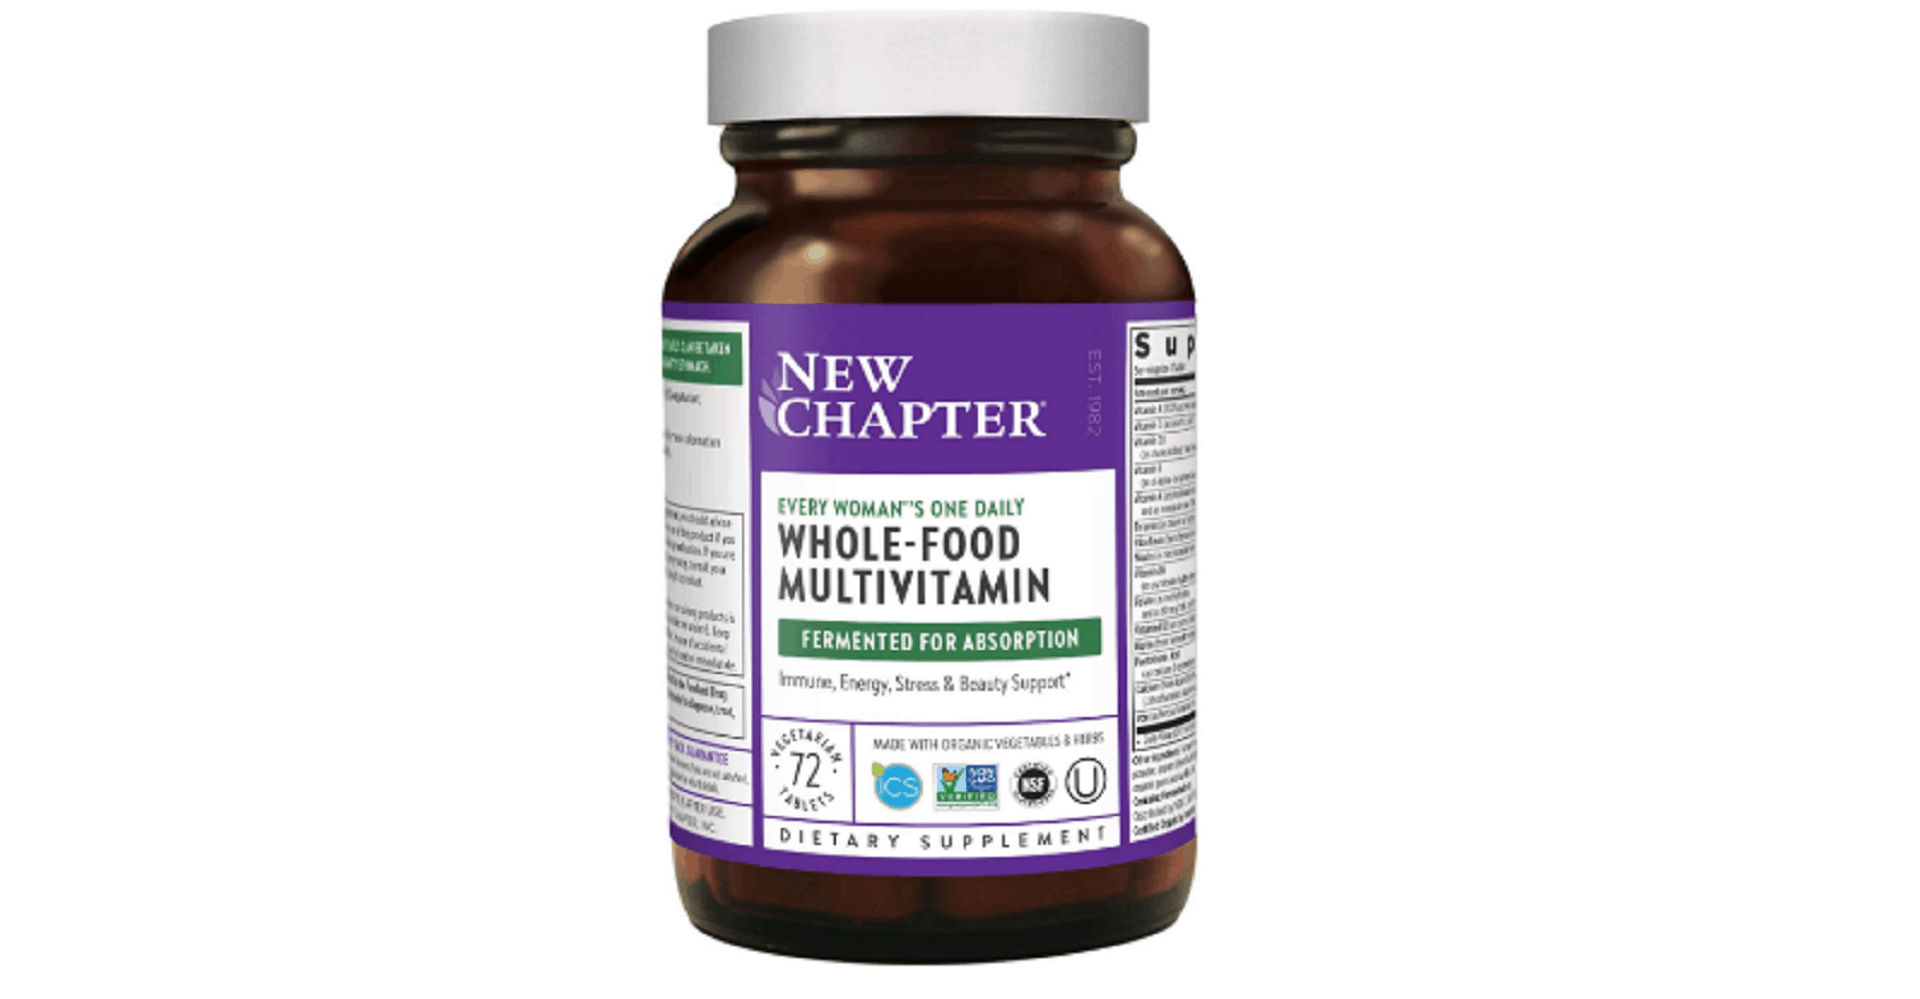 new chapter whole food multivitamin